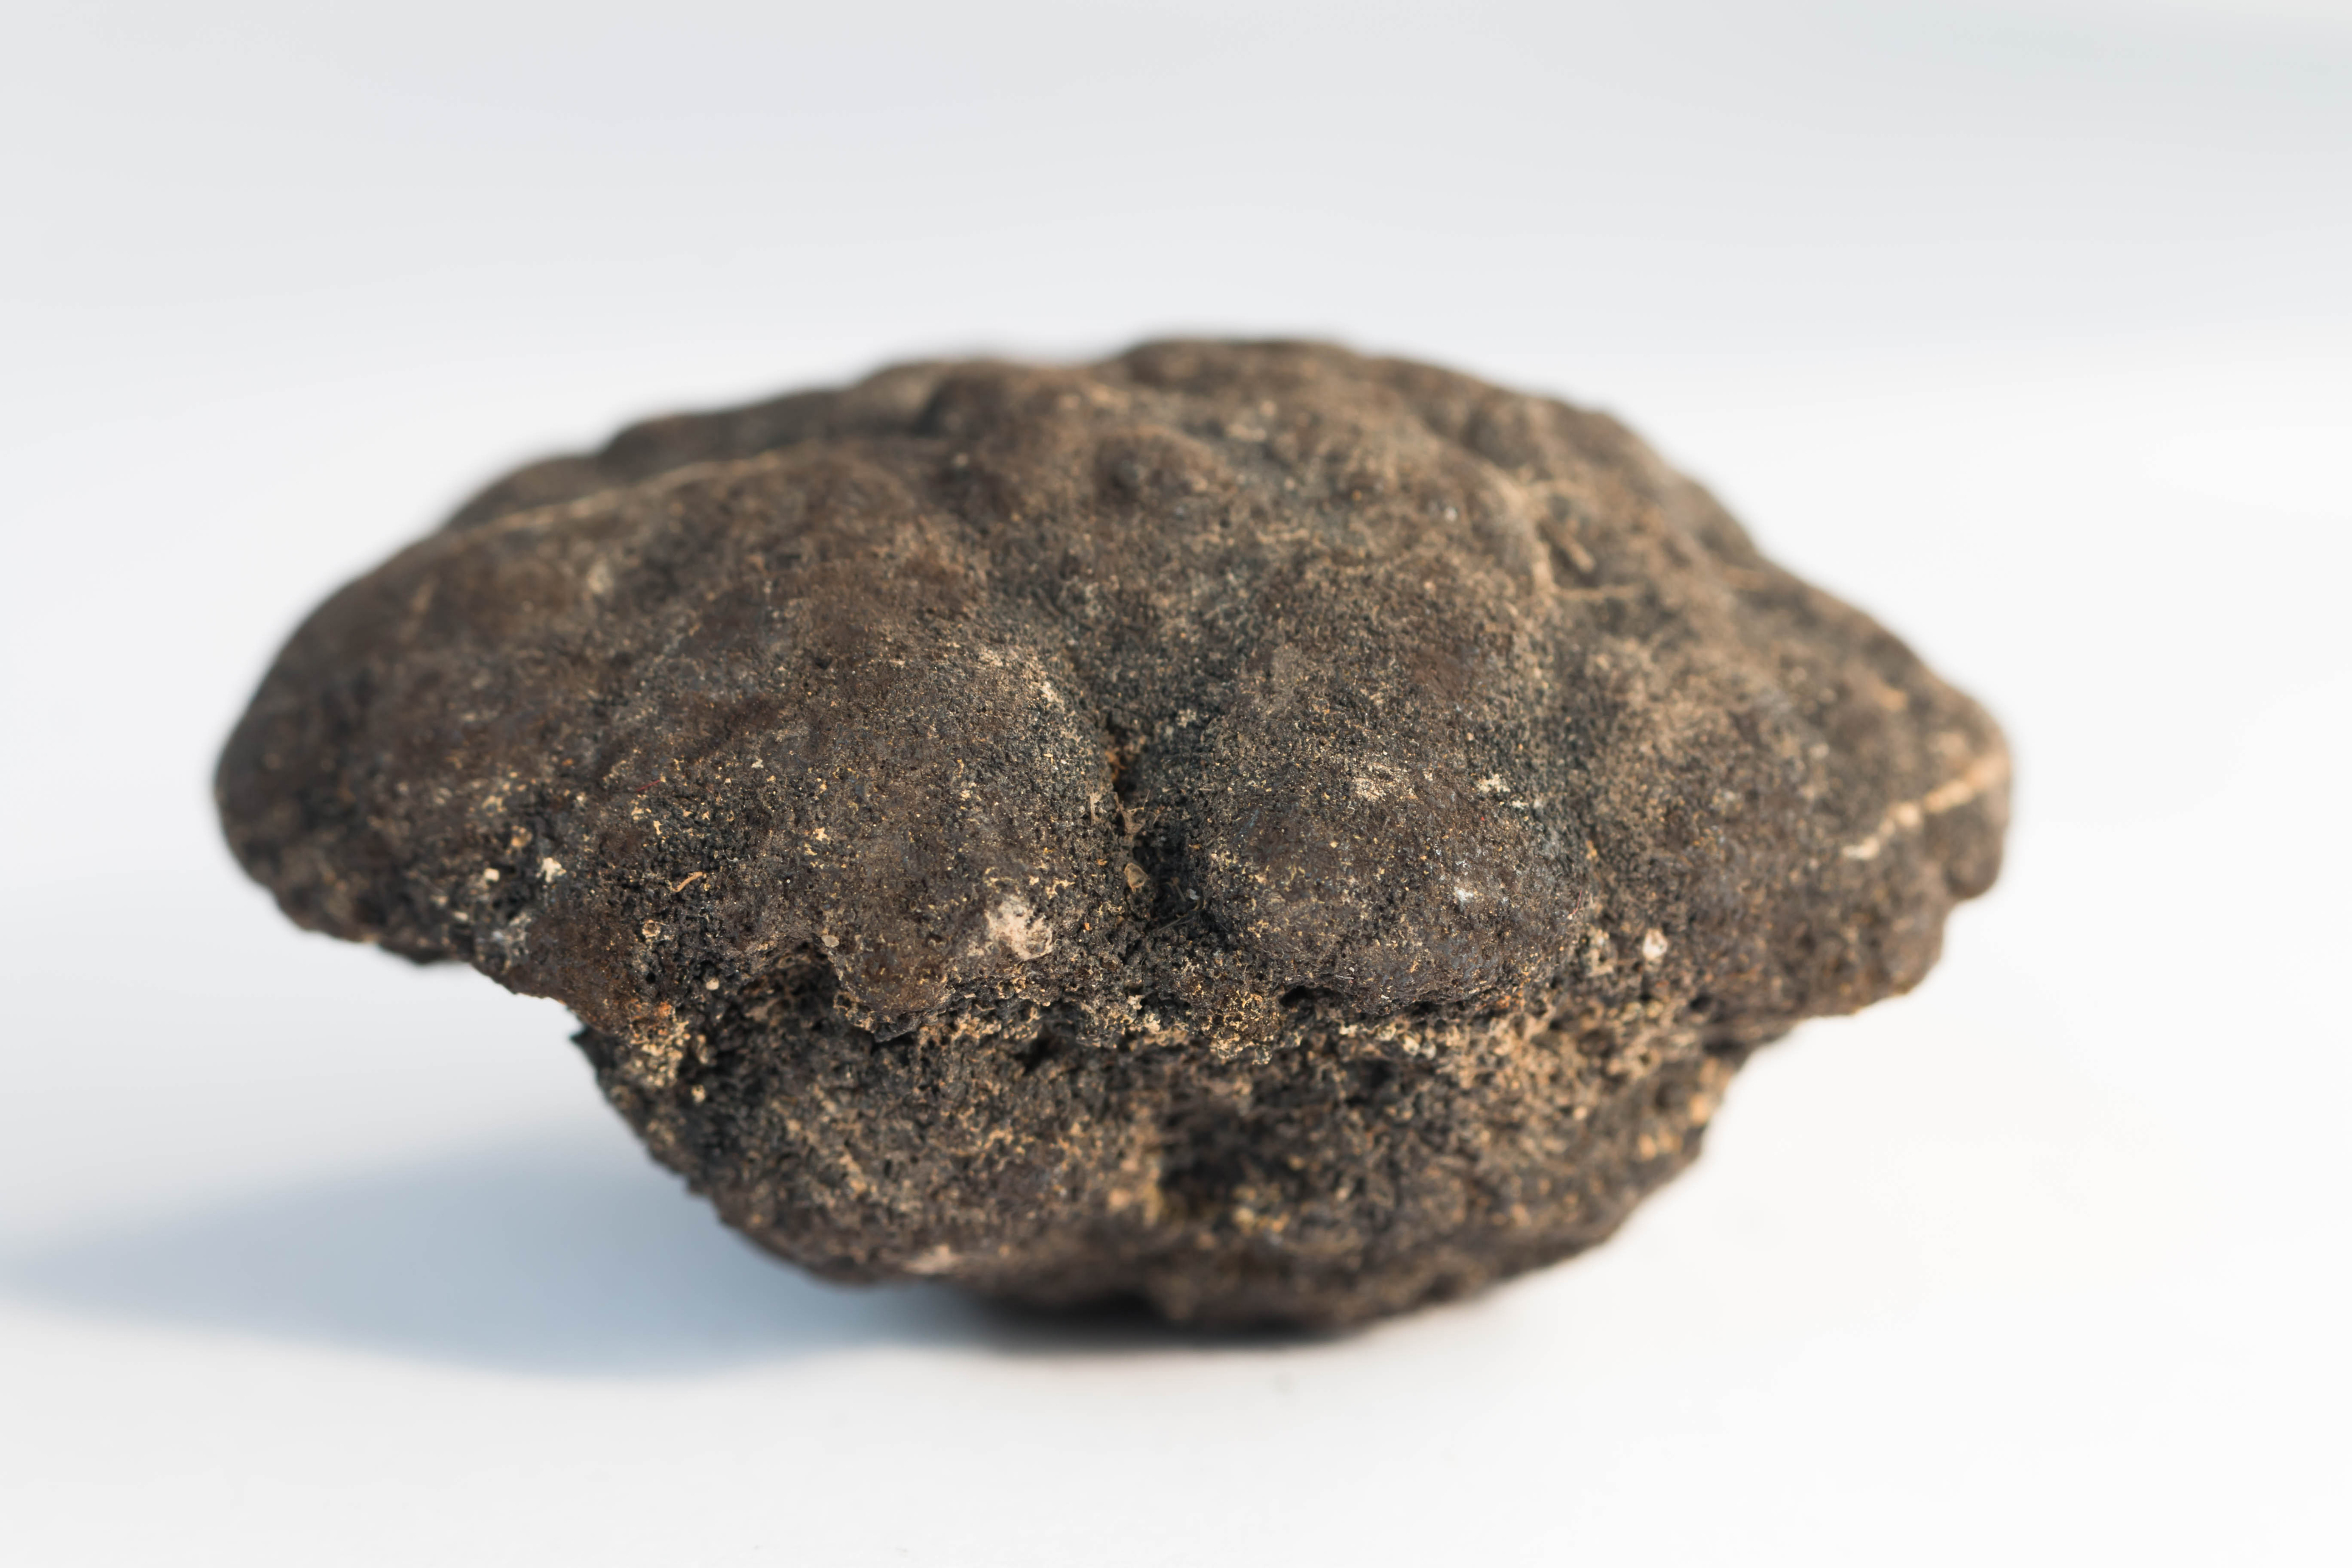 Polymetallic nodules from 5000m depth of Pacific ocean